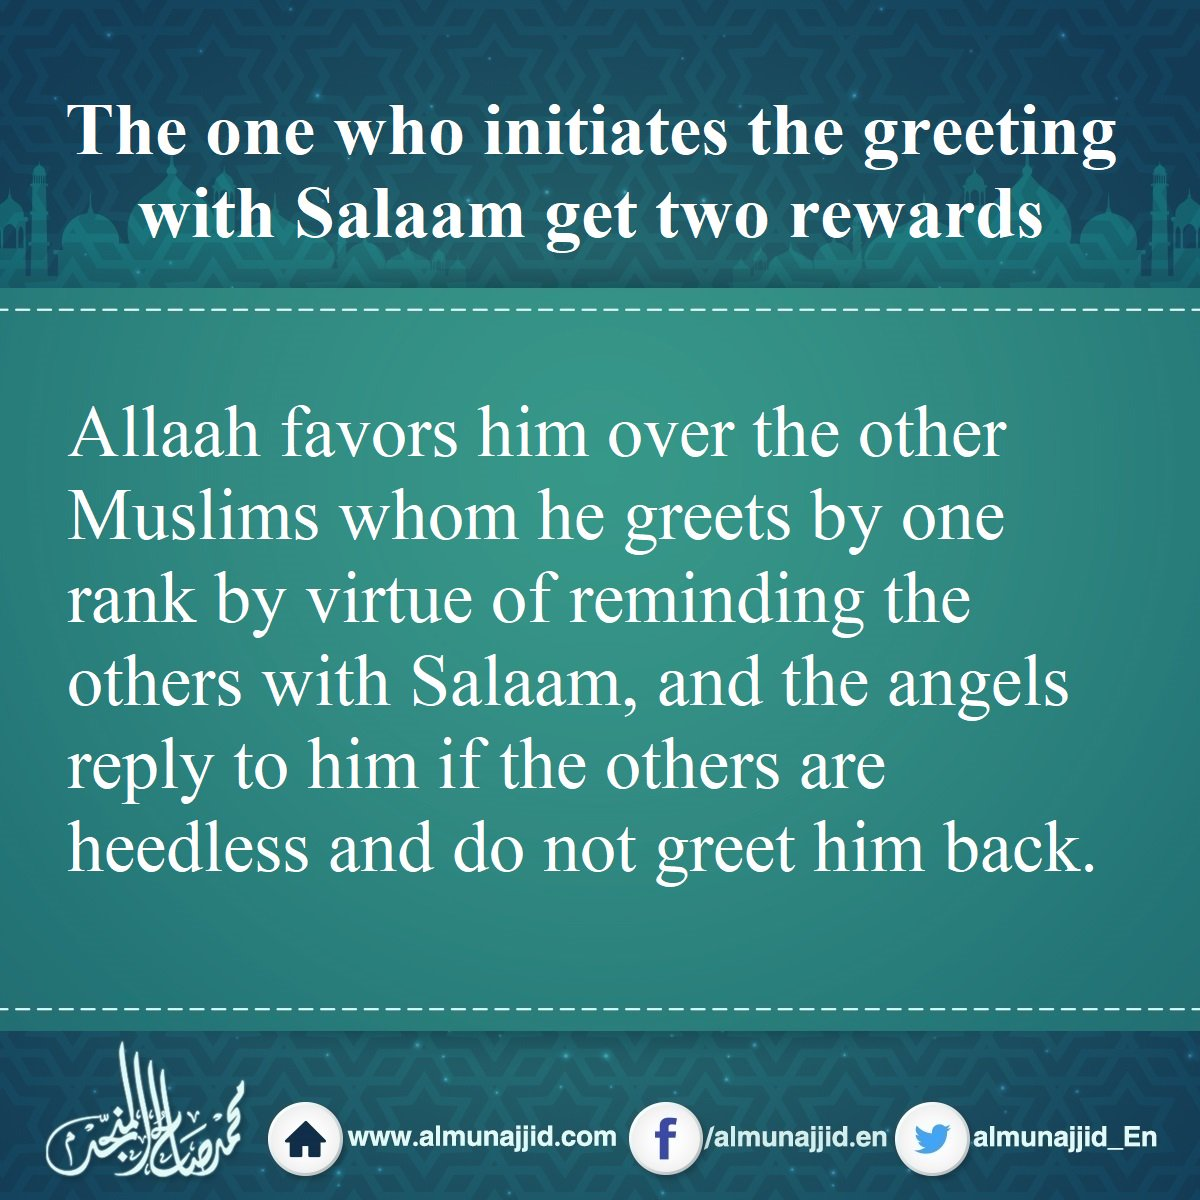 Mohammad Almunajjid On Twitter The One Who Initiates The Greeting